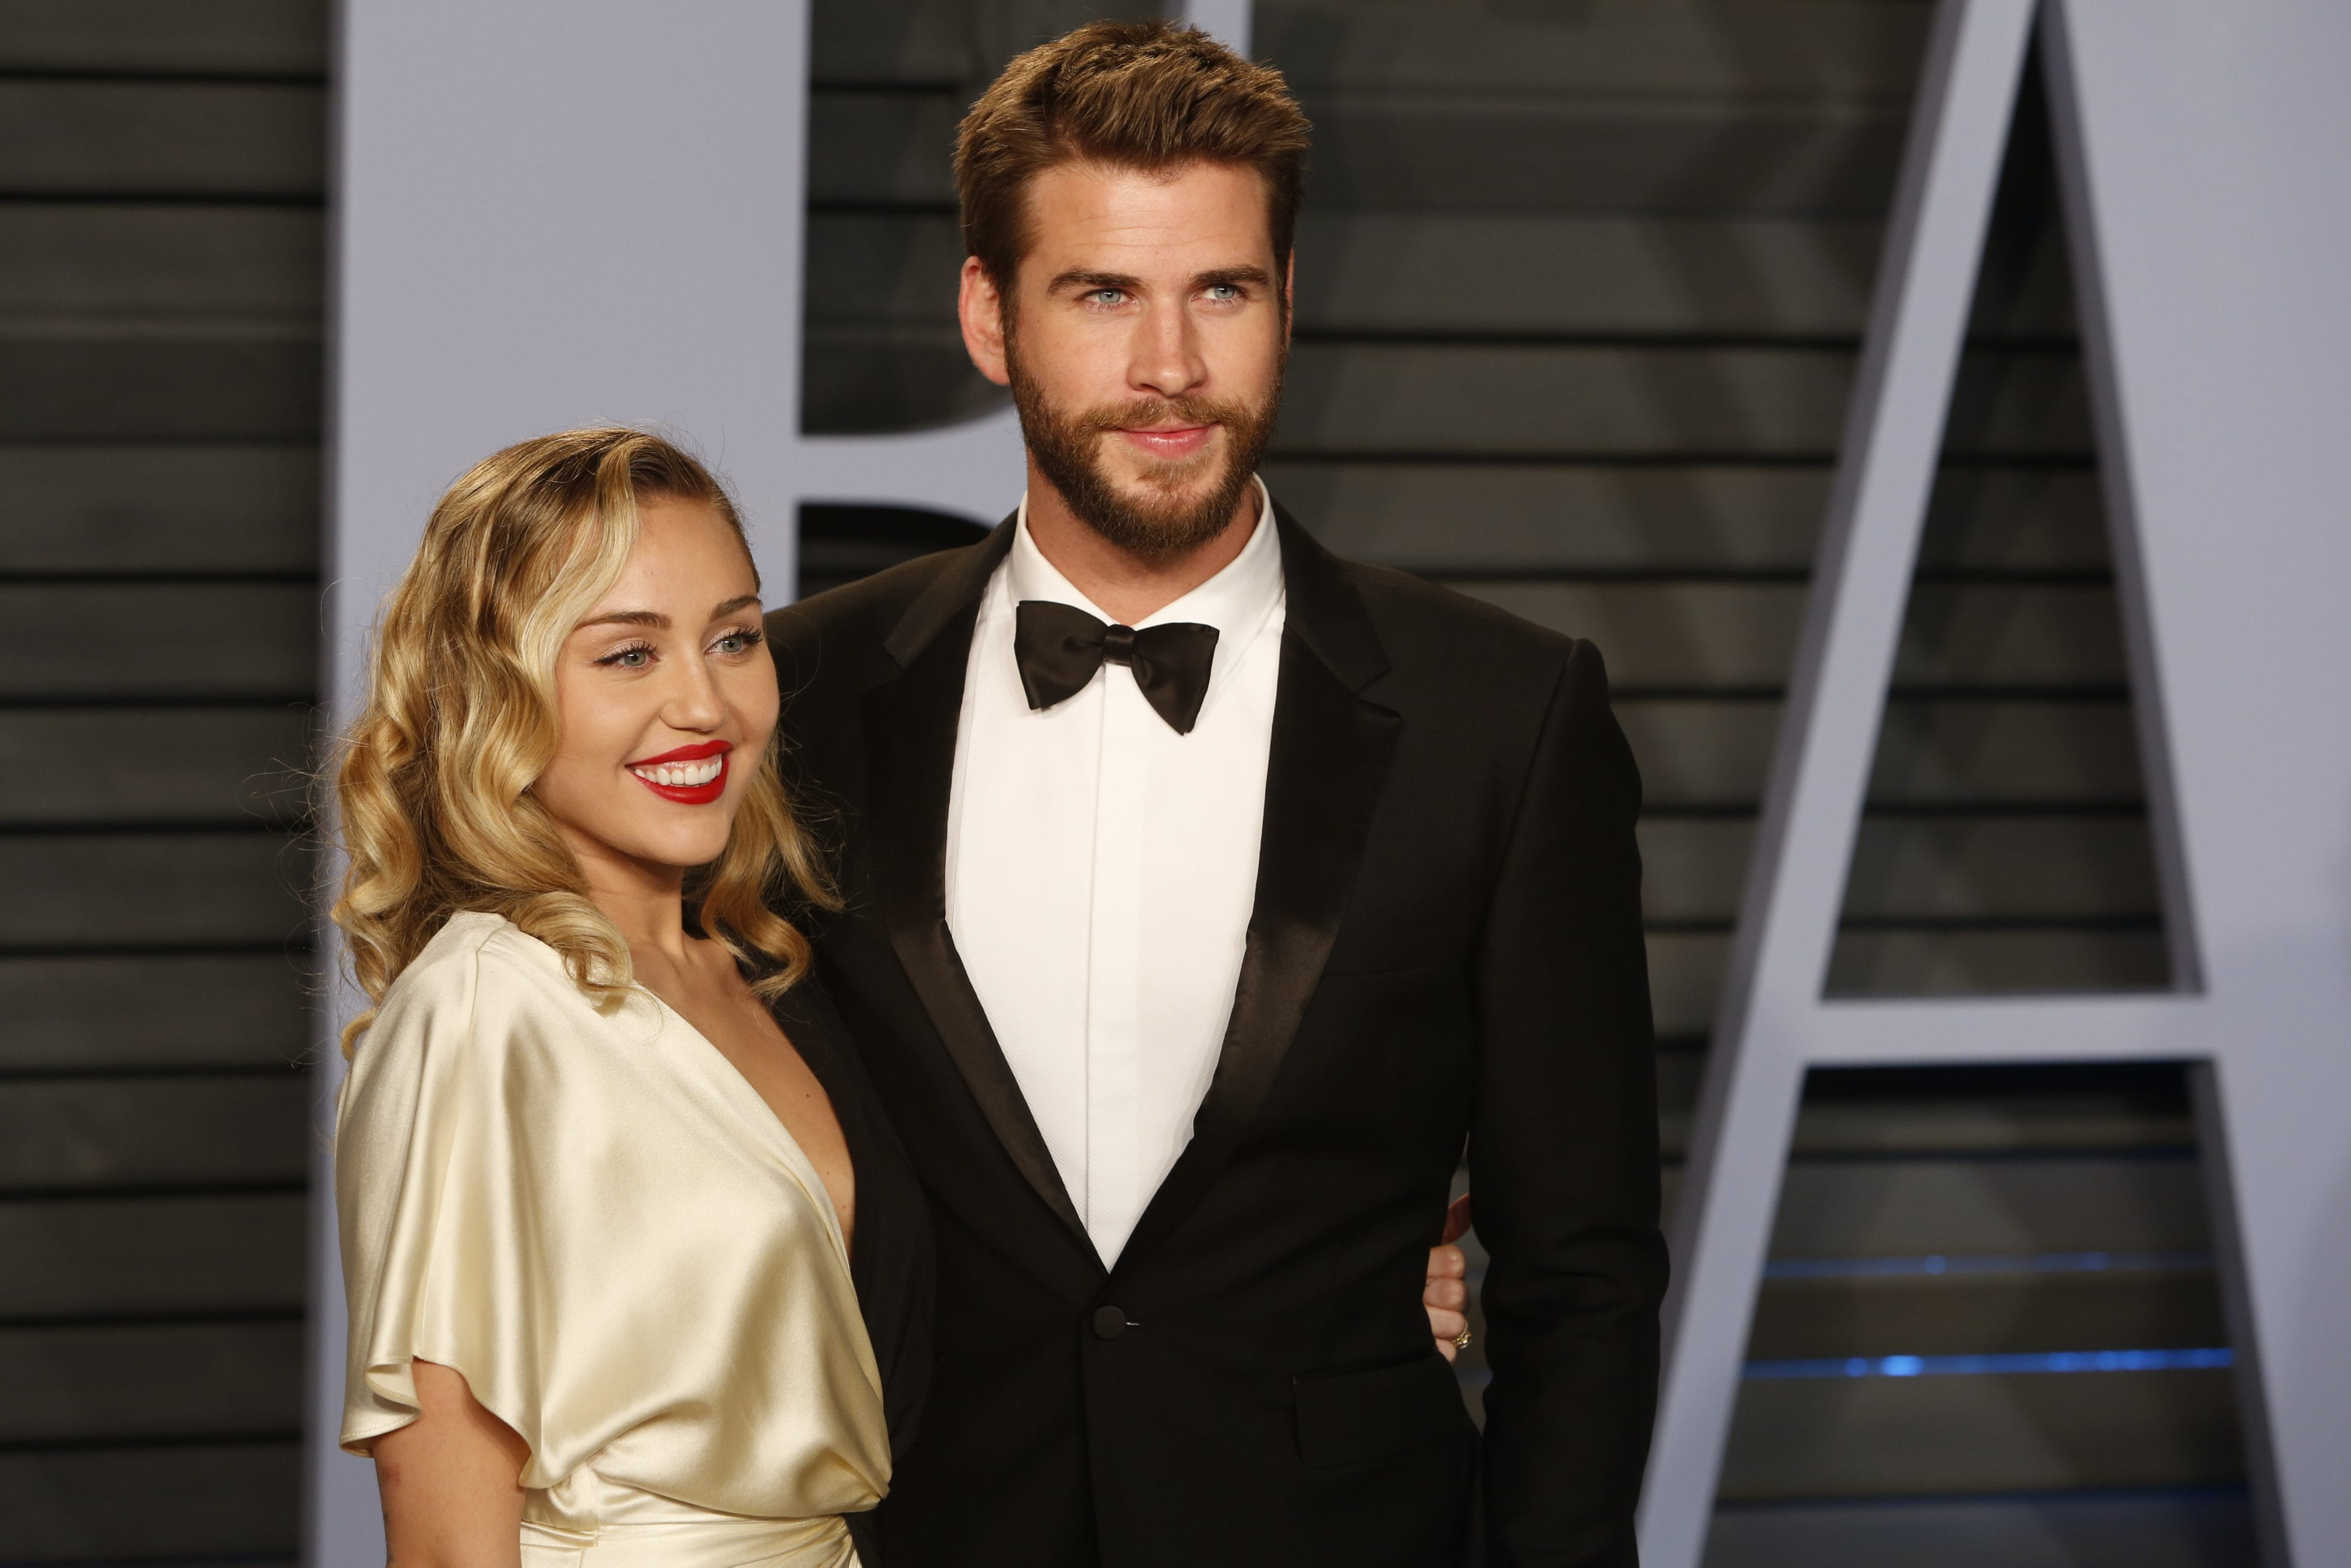 Miley and Liam may never walk down the aisle. (Photo: WENN)